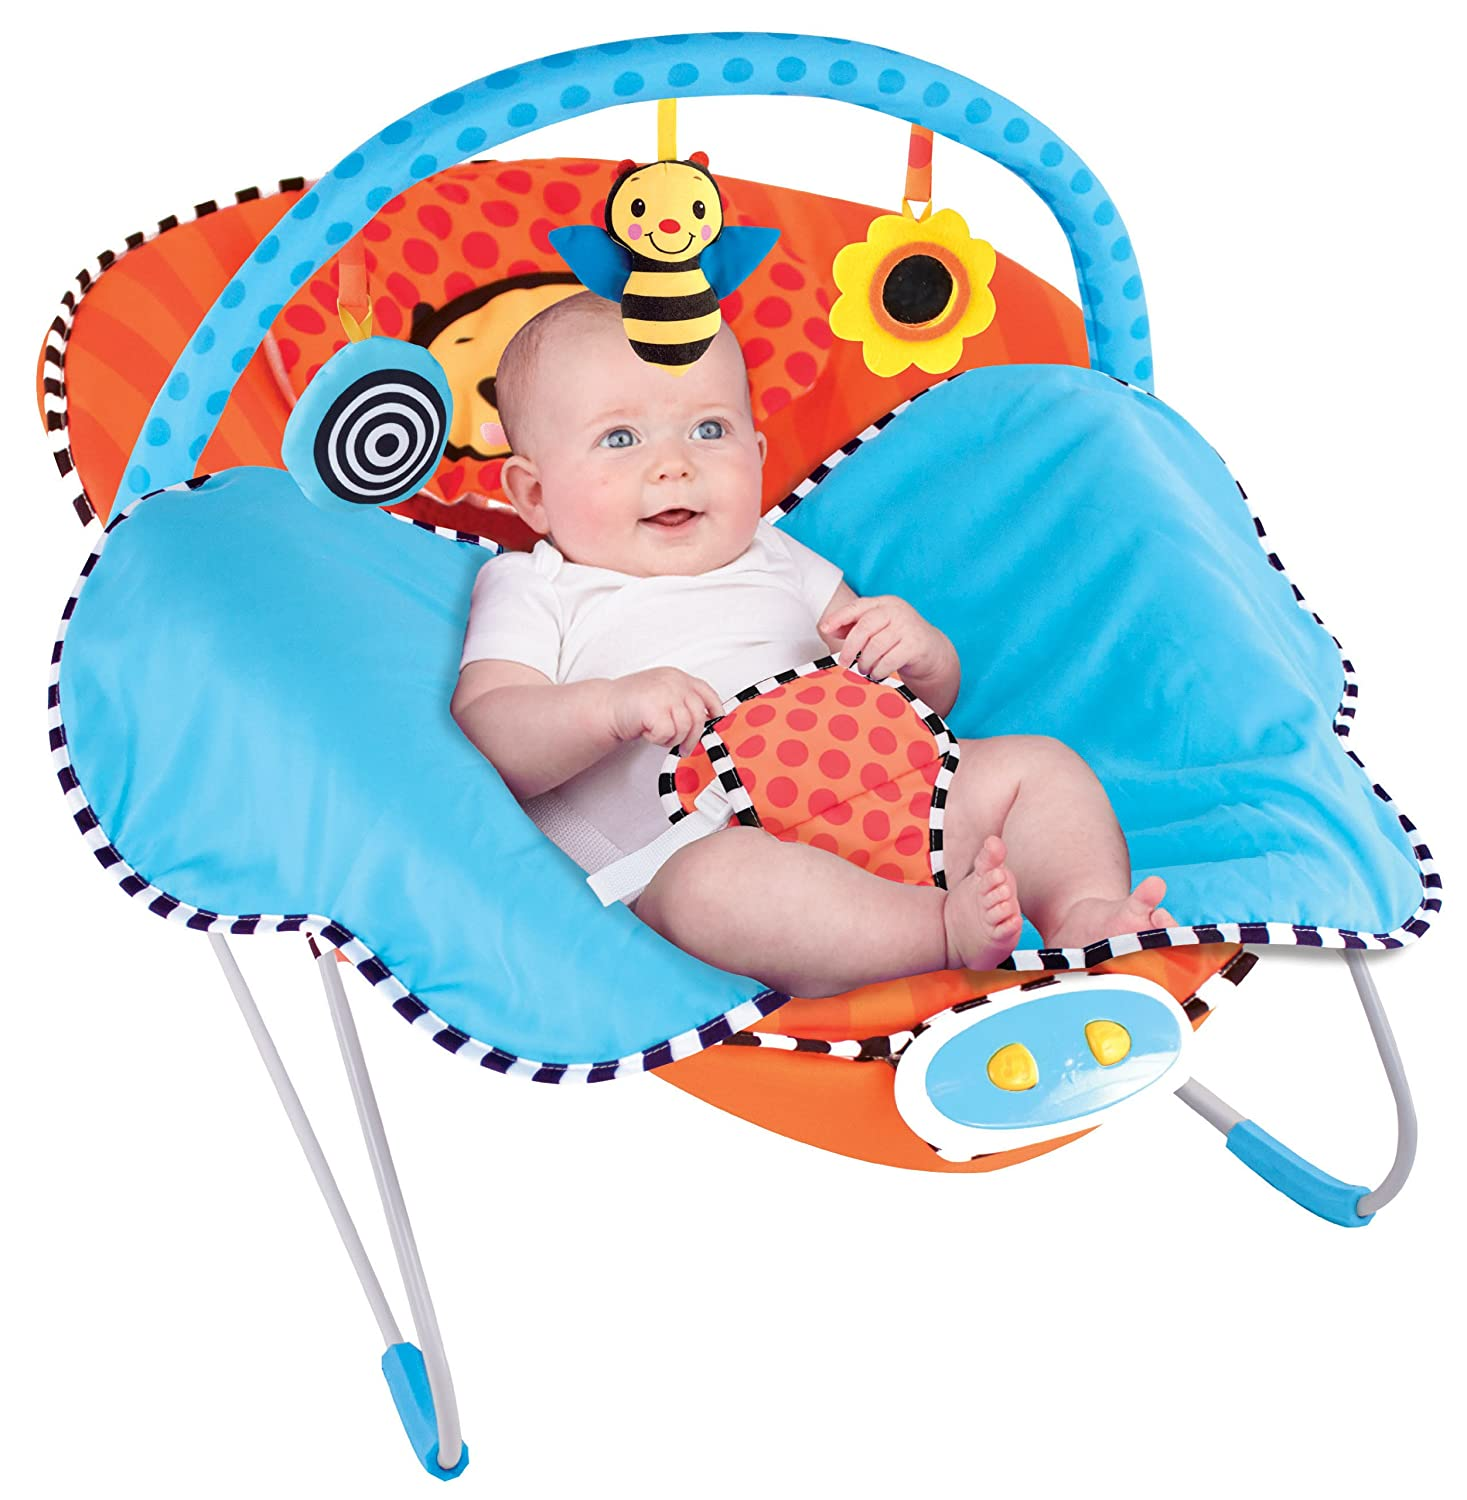 Sassy Cuddle Bug Bouncer, Whimsical Bumble Bee